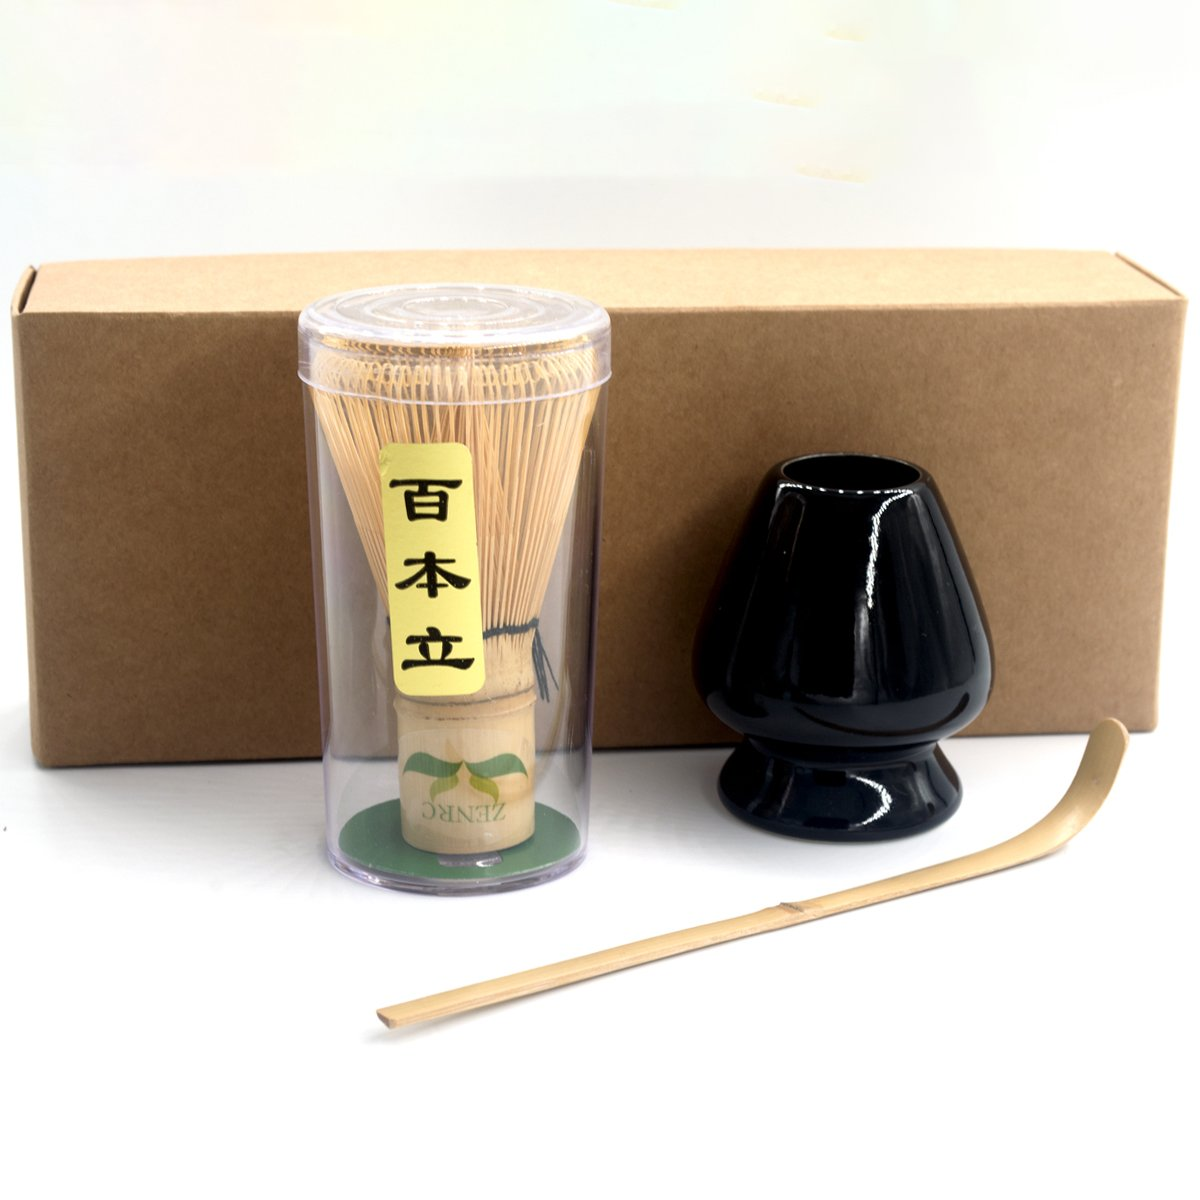 3/pc Matcha Kit include Organic Bamboo 100 prongs Chasen (Matcha Whisk) Hooked Scoop (Chashaku) and whisk holder - Japanese Tea Ceremony Giftset